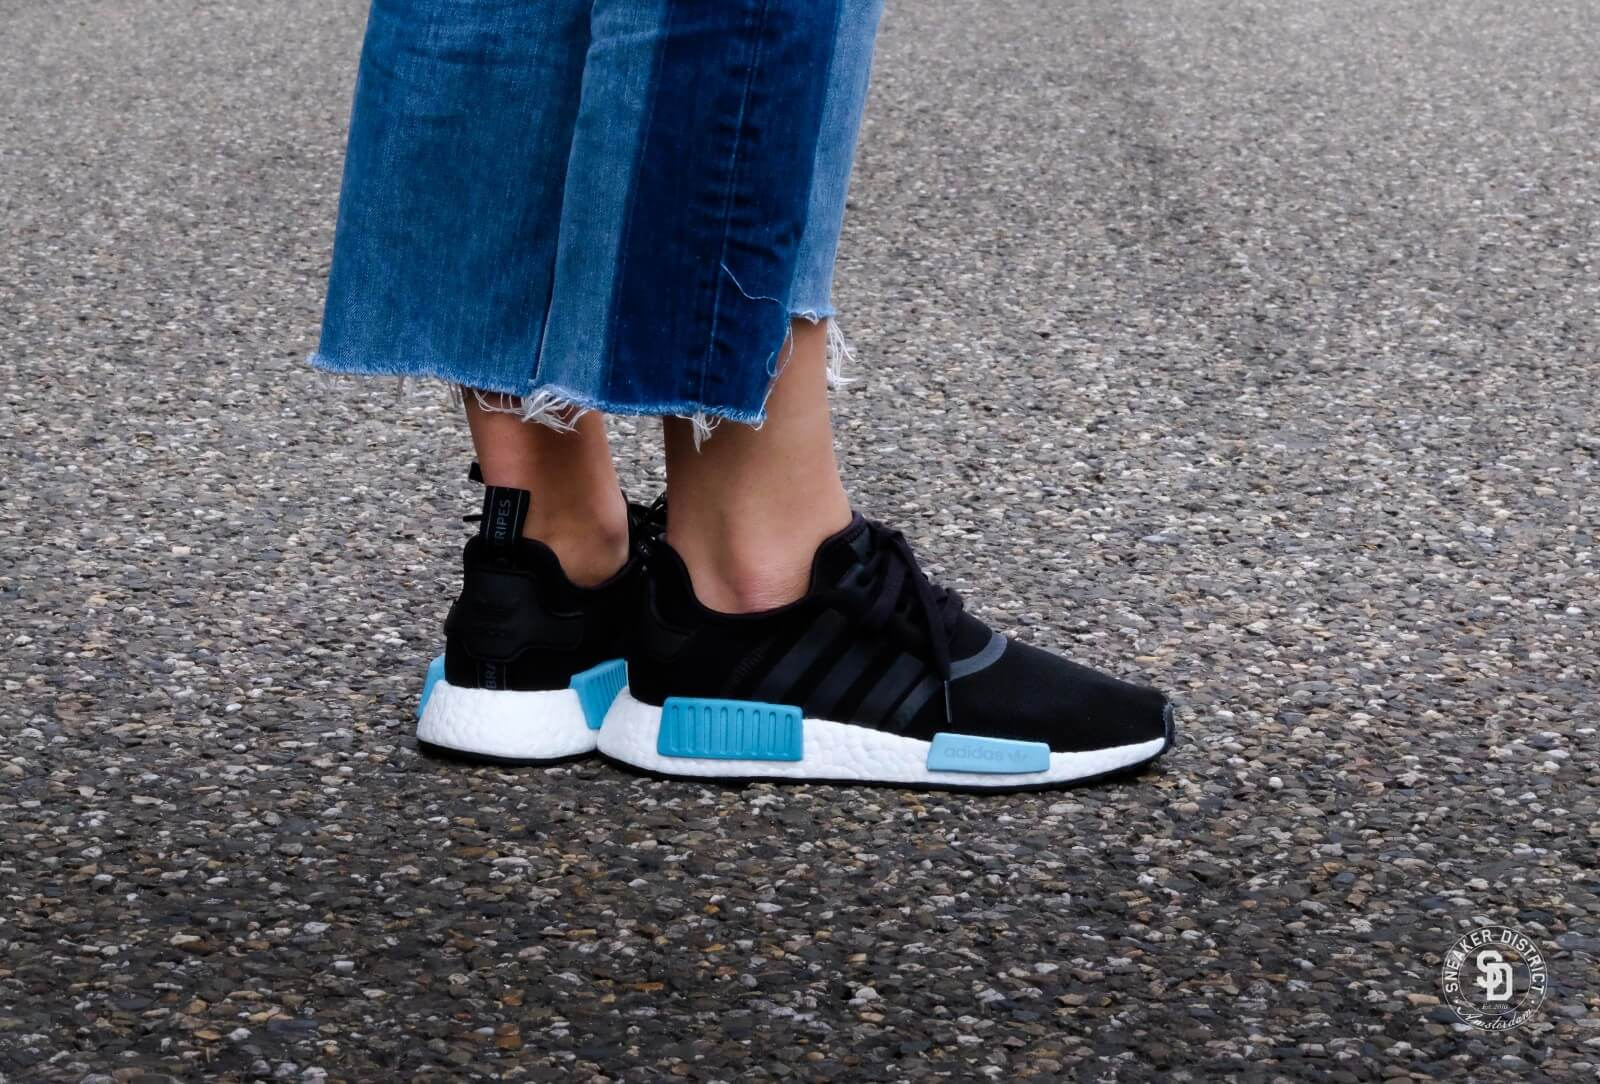 Adidas Wmns Nmd R1 Core Black Icey Blue By9951